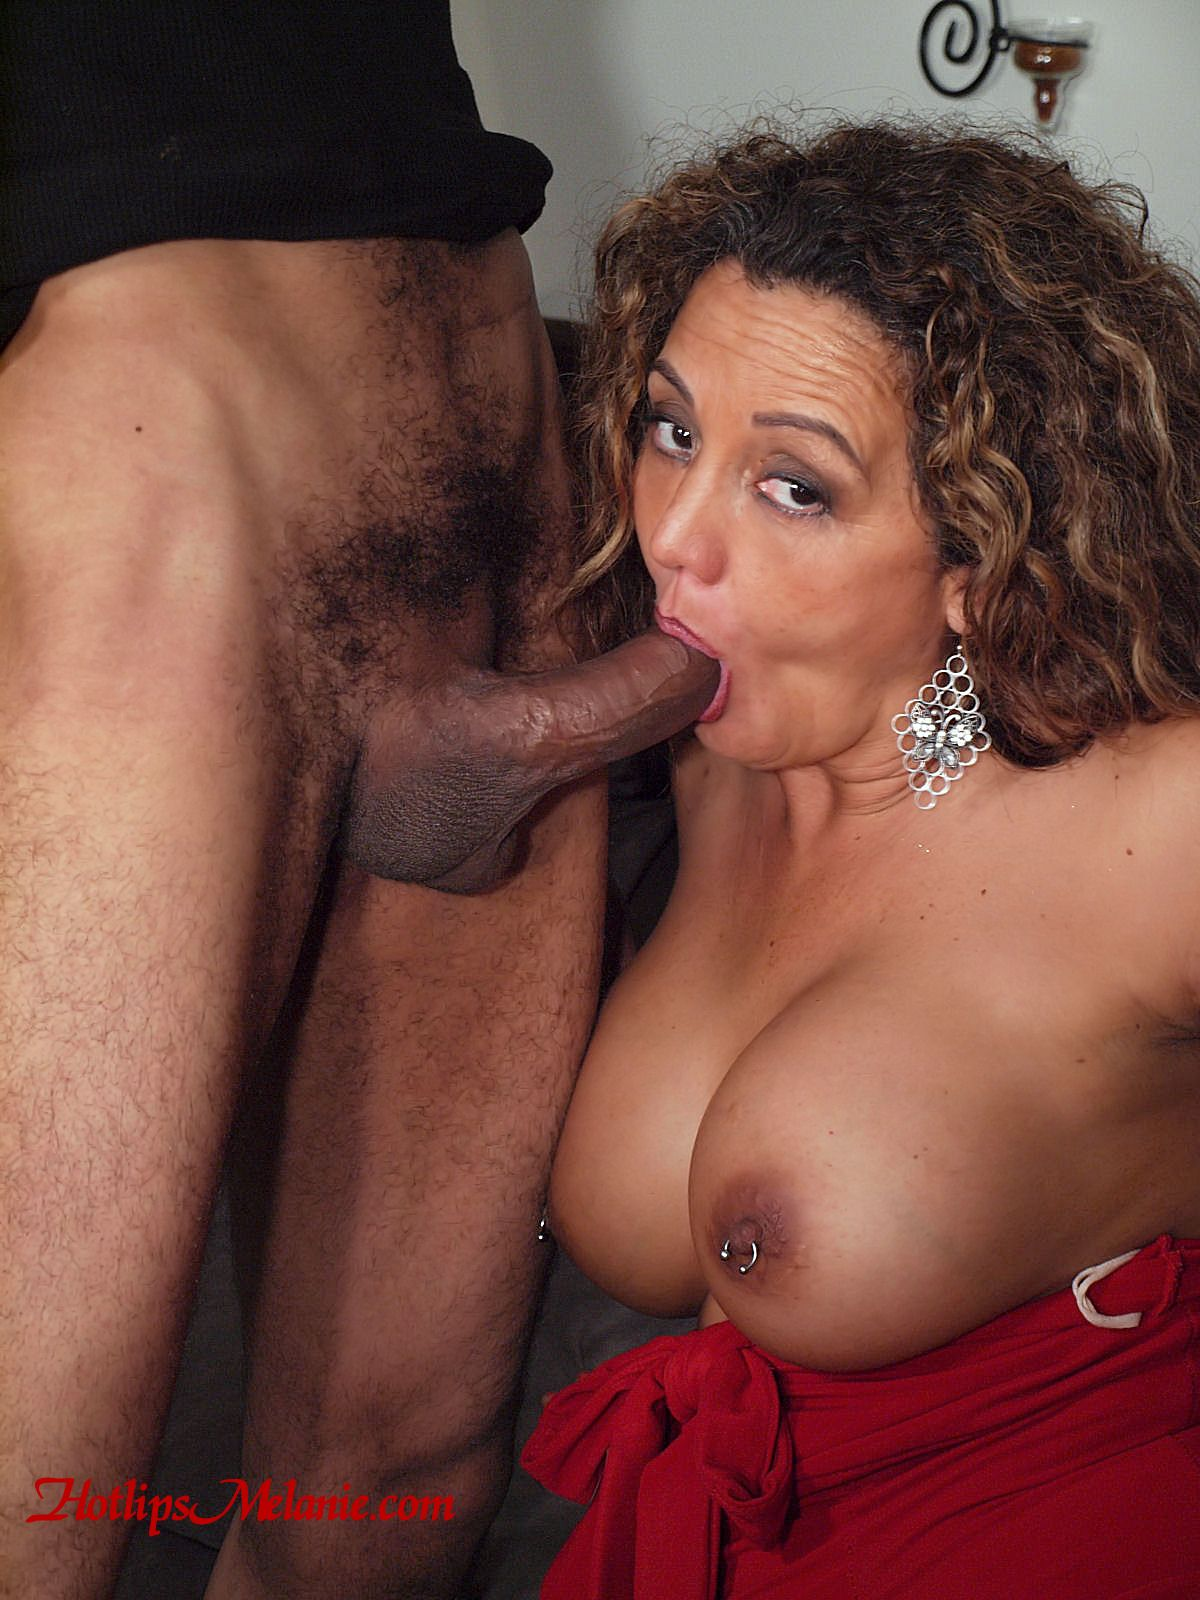 Interracial deep sucking of huge cock